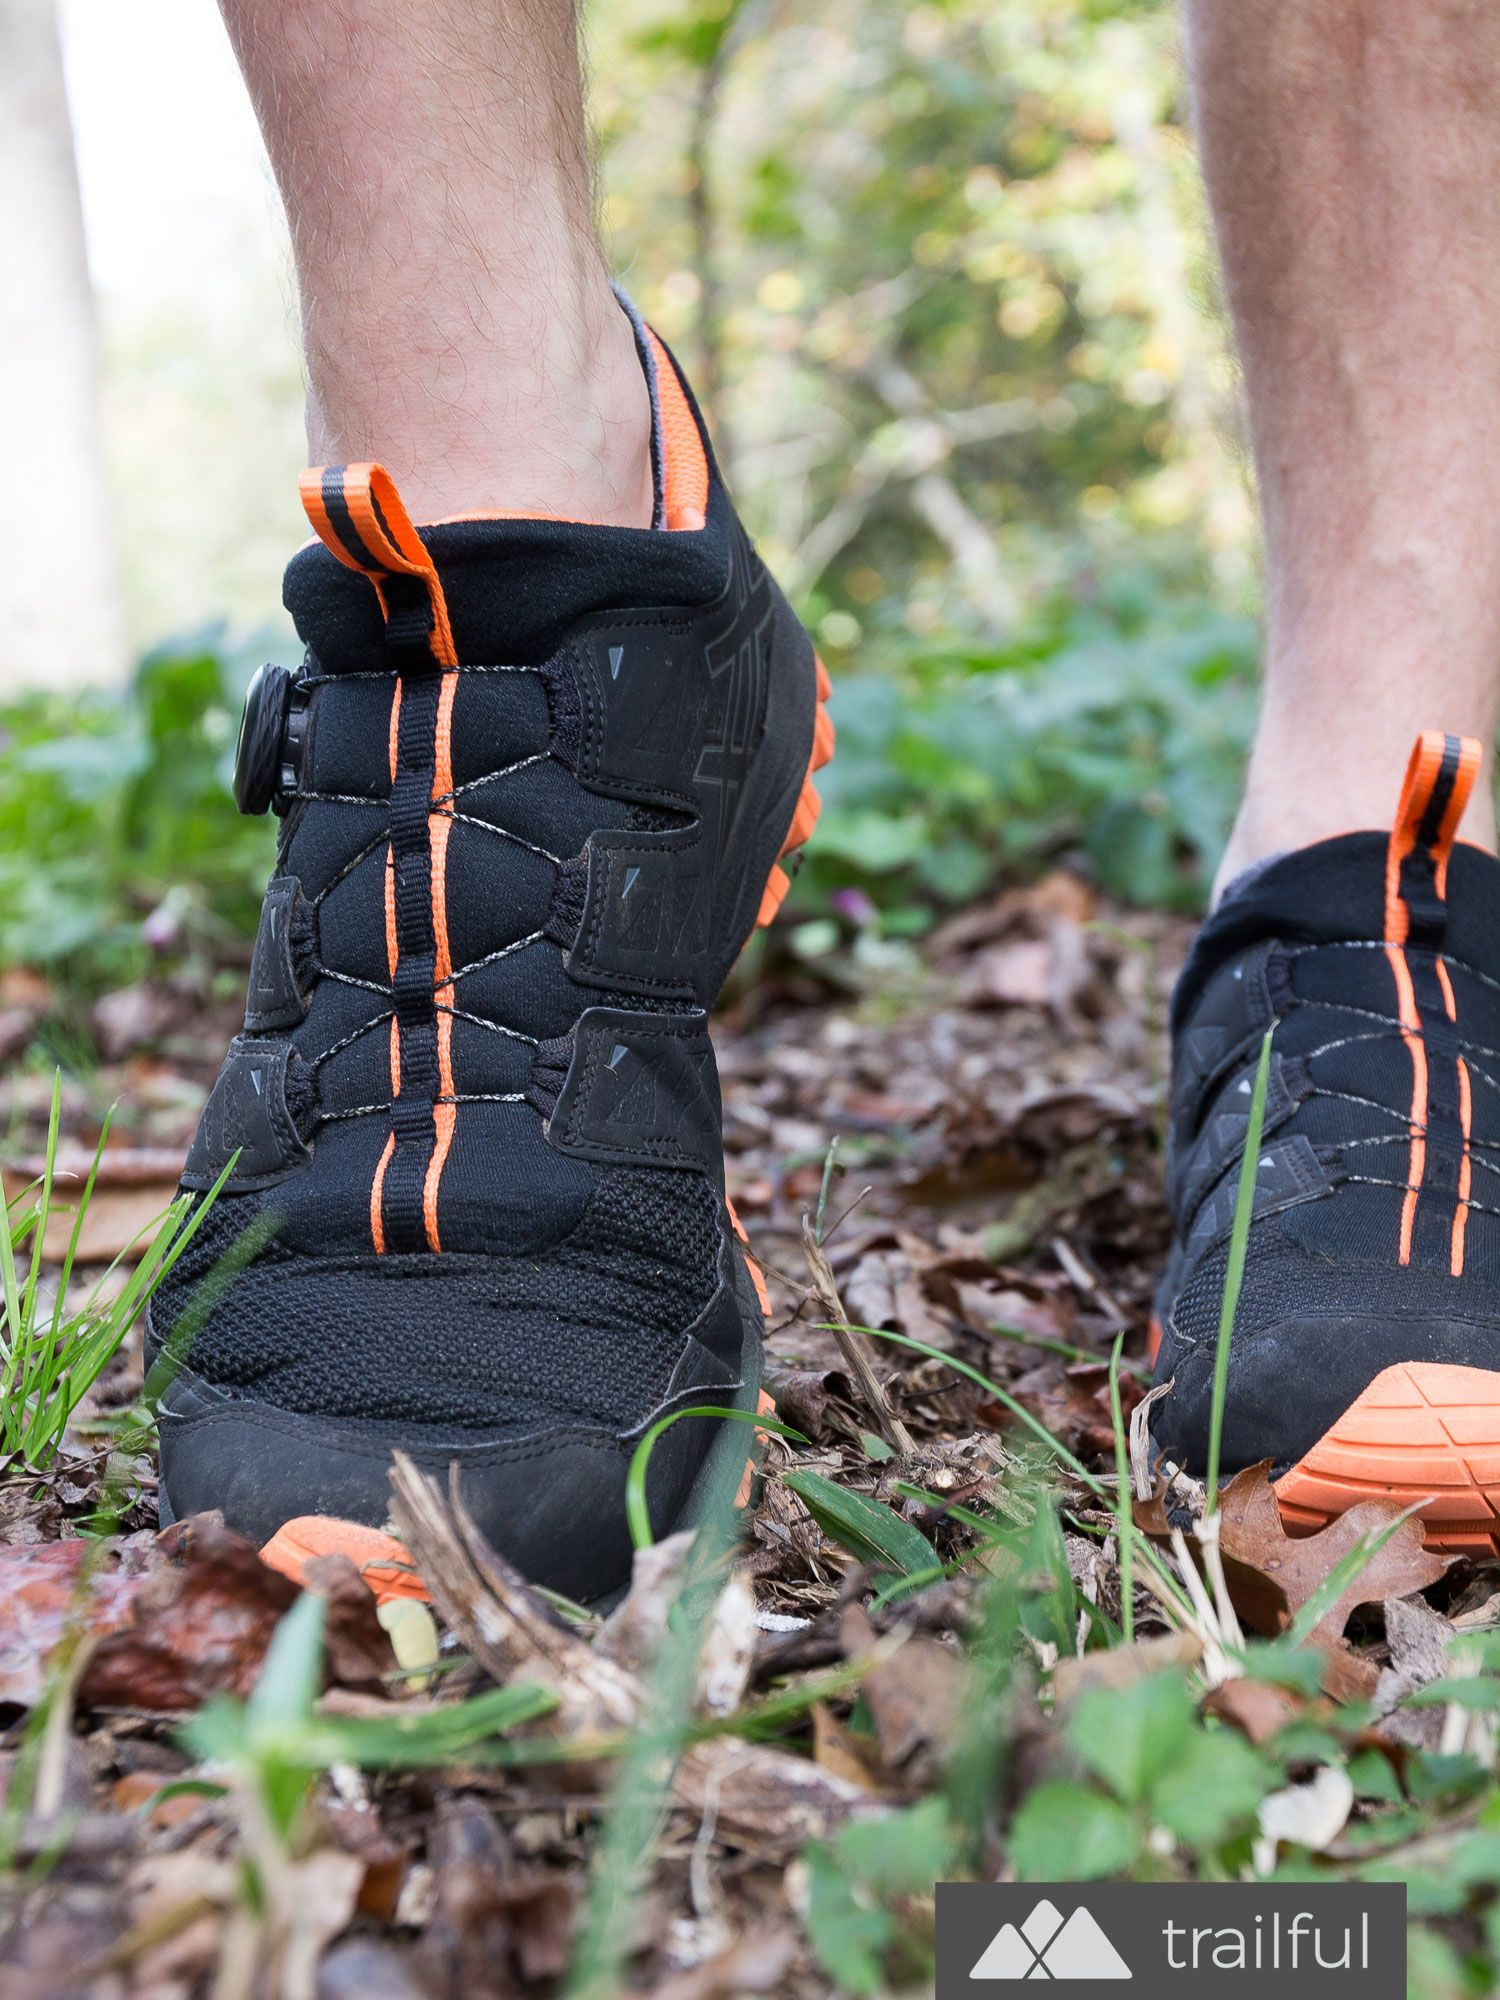 98cccac50f Asics GEL-FujiRado trail running shoe: our trail-tested review of this  innovative, ultra-comfortable, high-traction trail runner